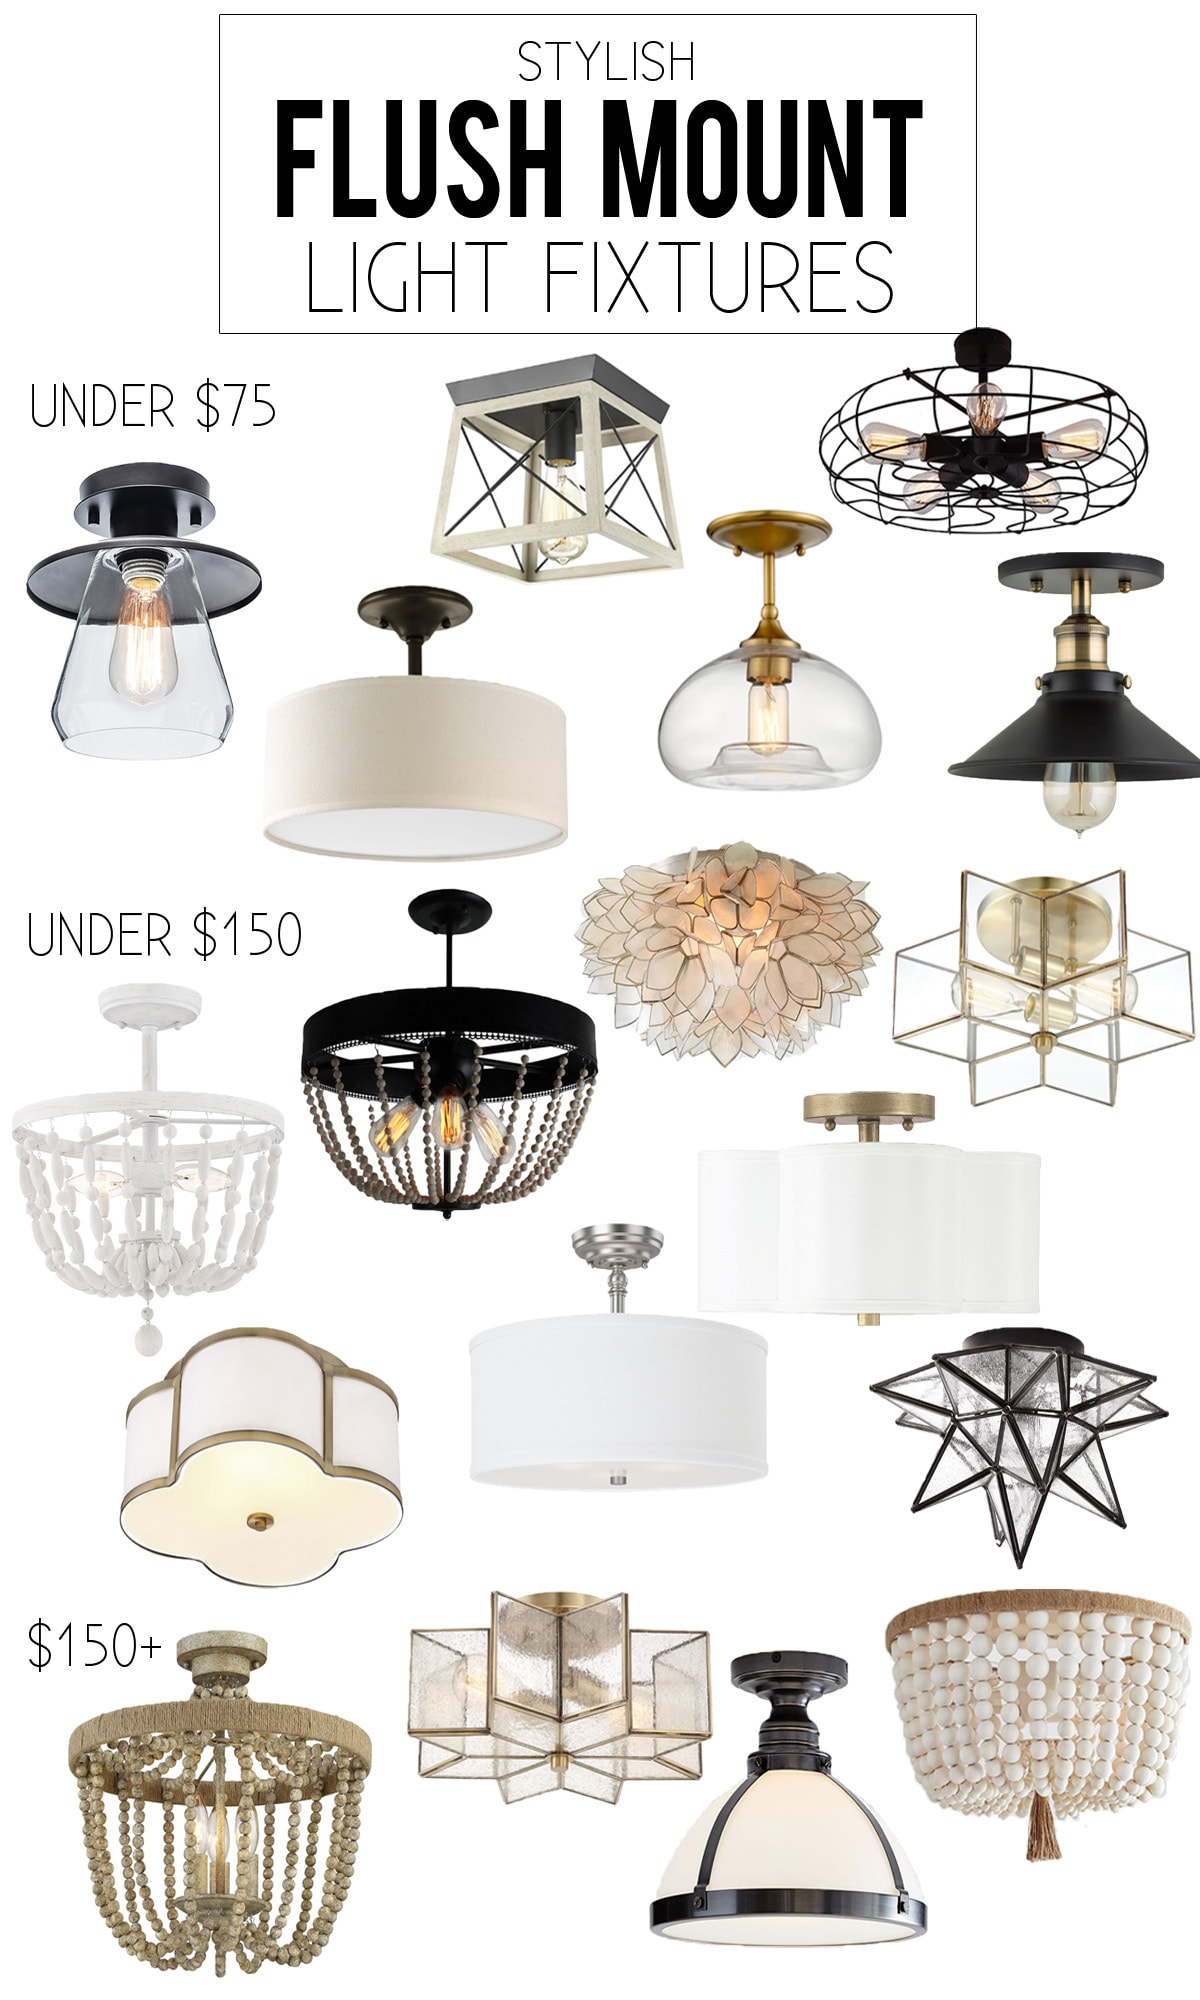 Stylish Collection Of Flush Mount Light Fixtures Life On Virginia Street